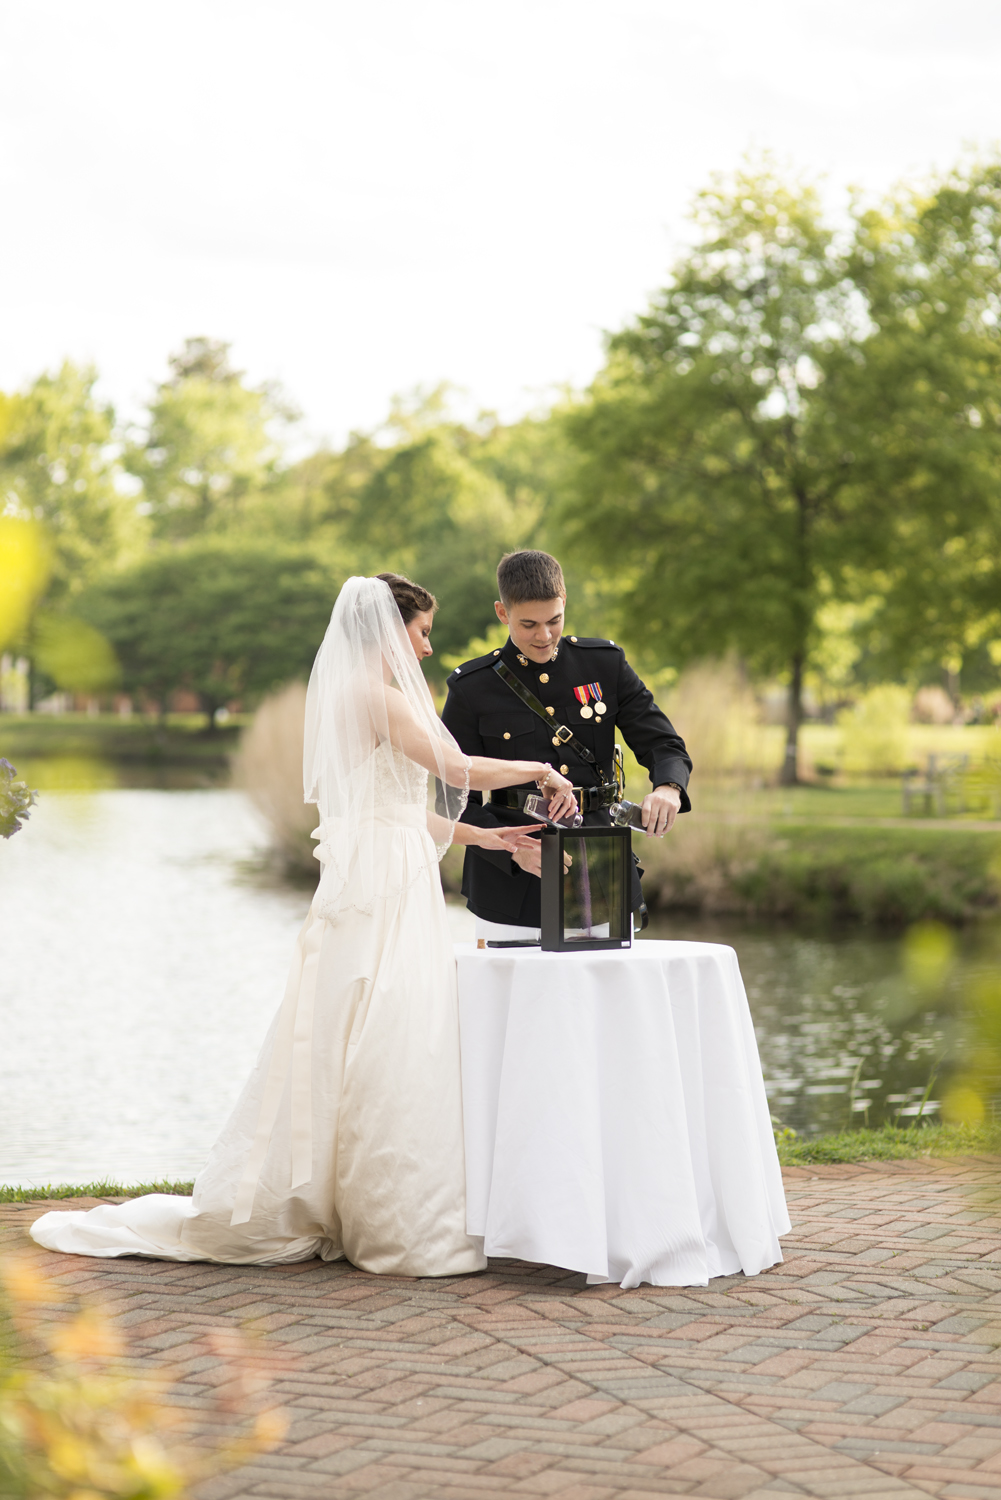 Bride and groom pouring unity sand at wedding | Maria Grace Photography